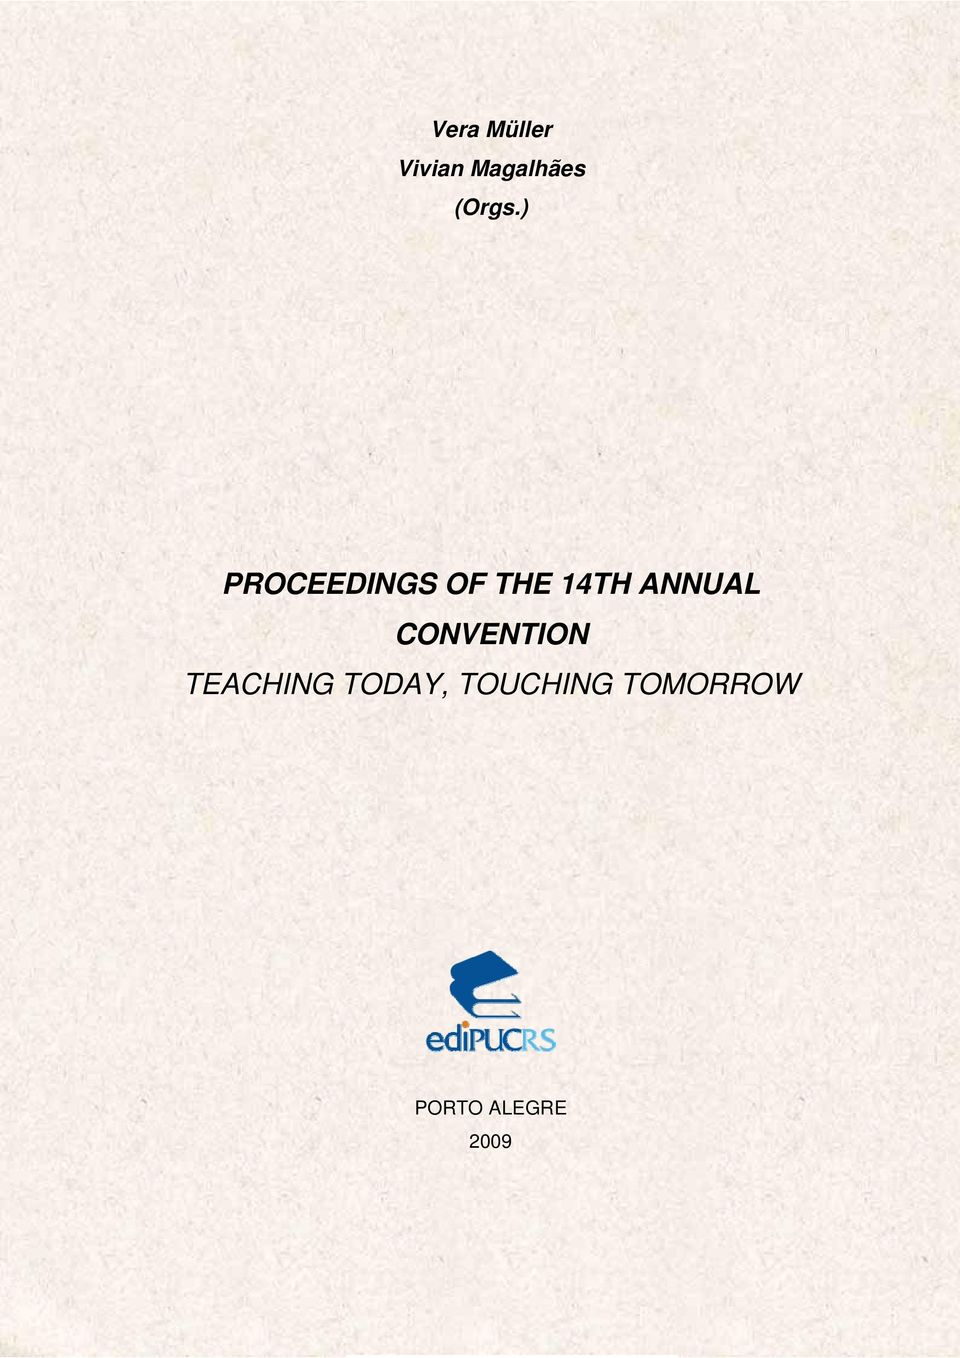 ) PROCEEDINGS OF THE 14TH ANNUAL